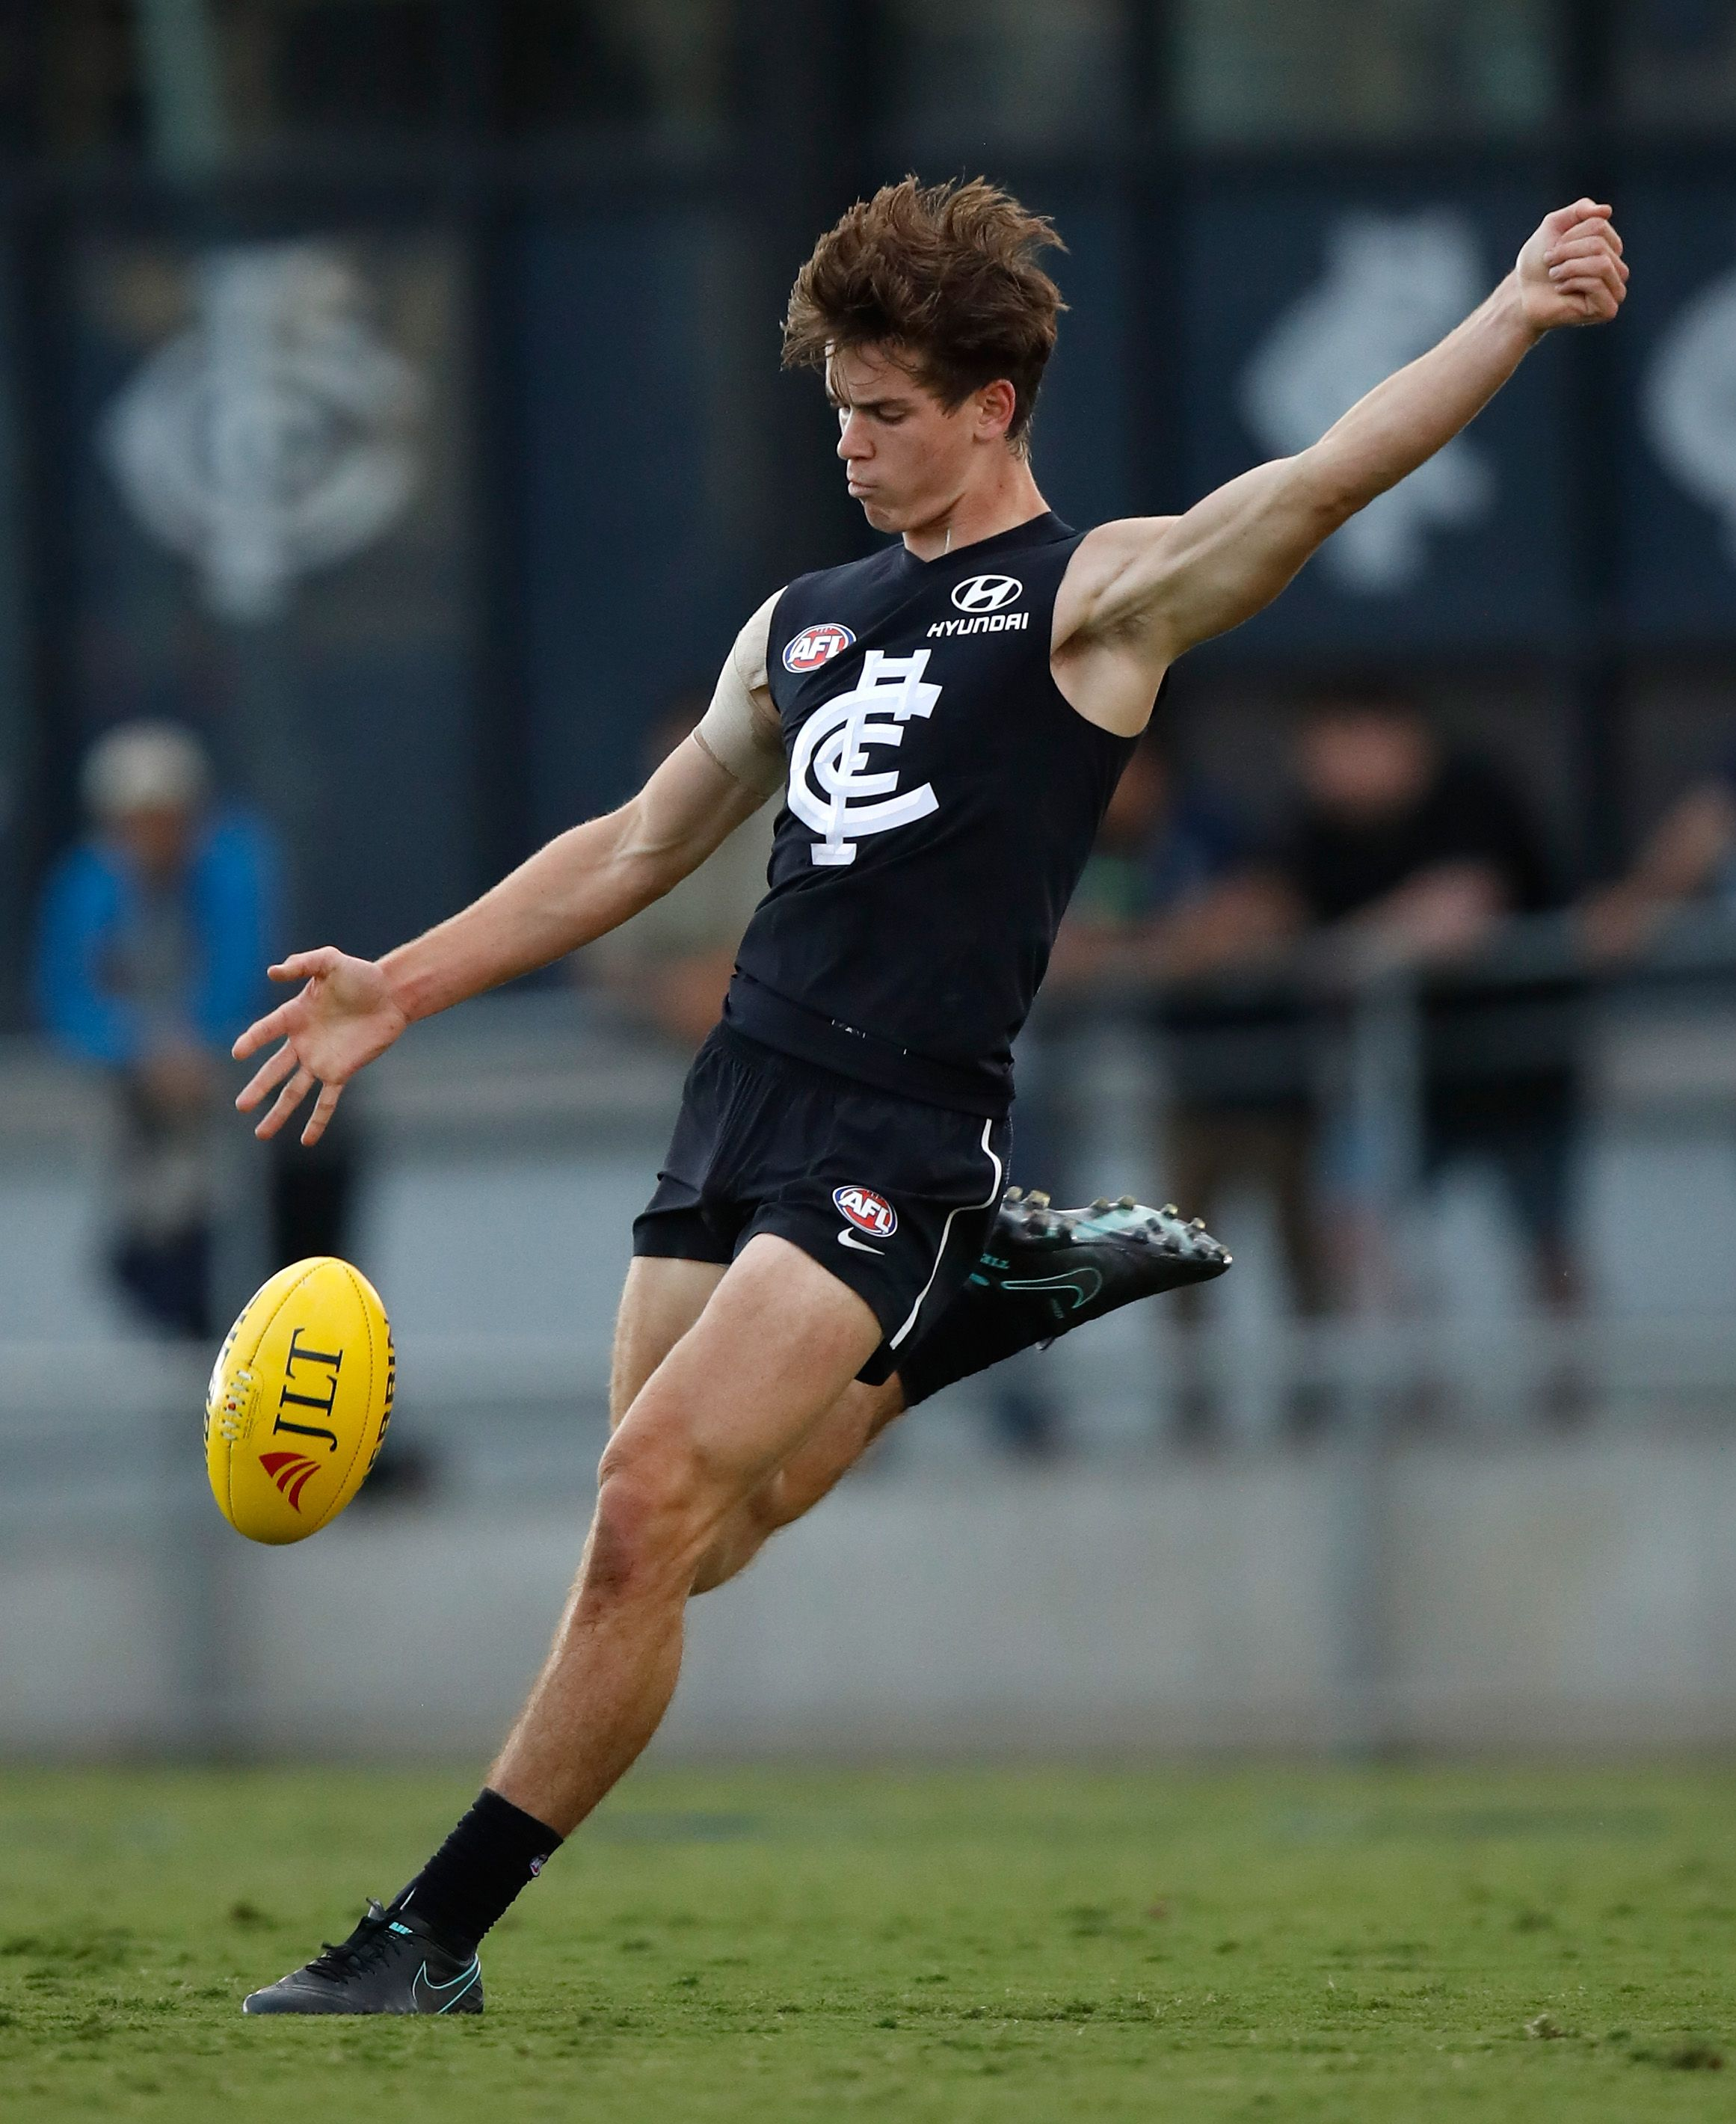 CARLTON has confirmed that top draft pick Paddy Dow will